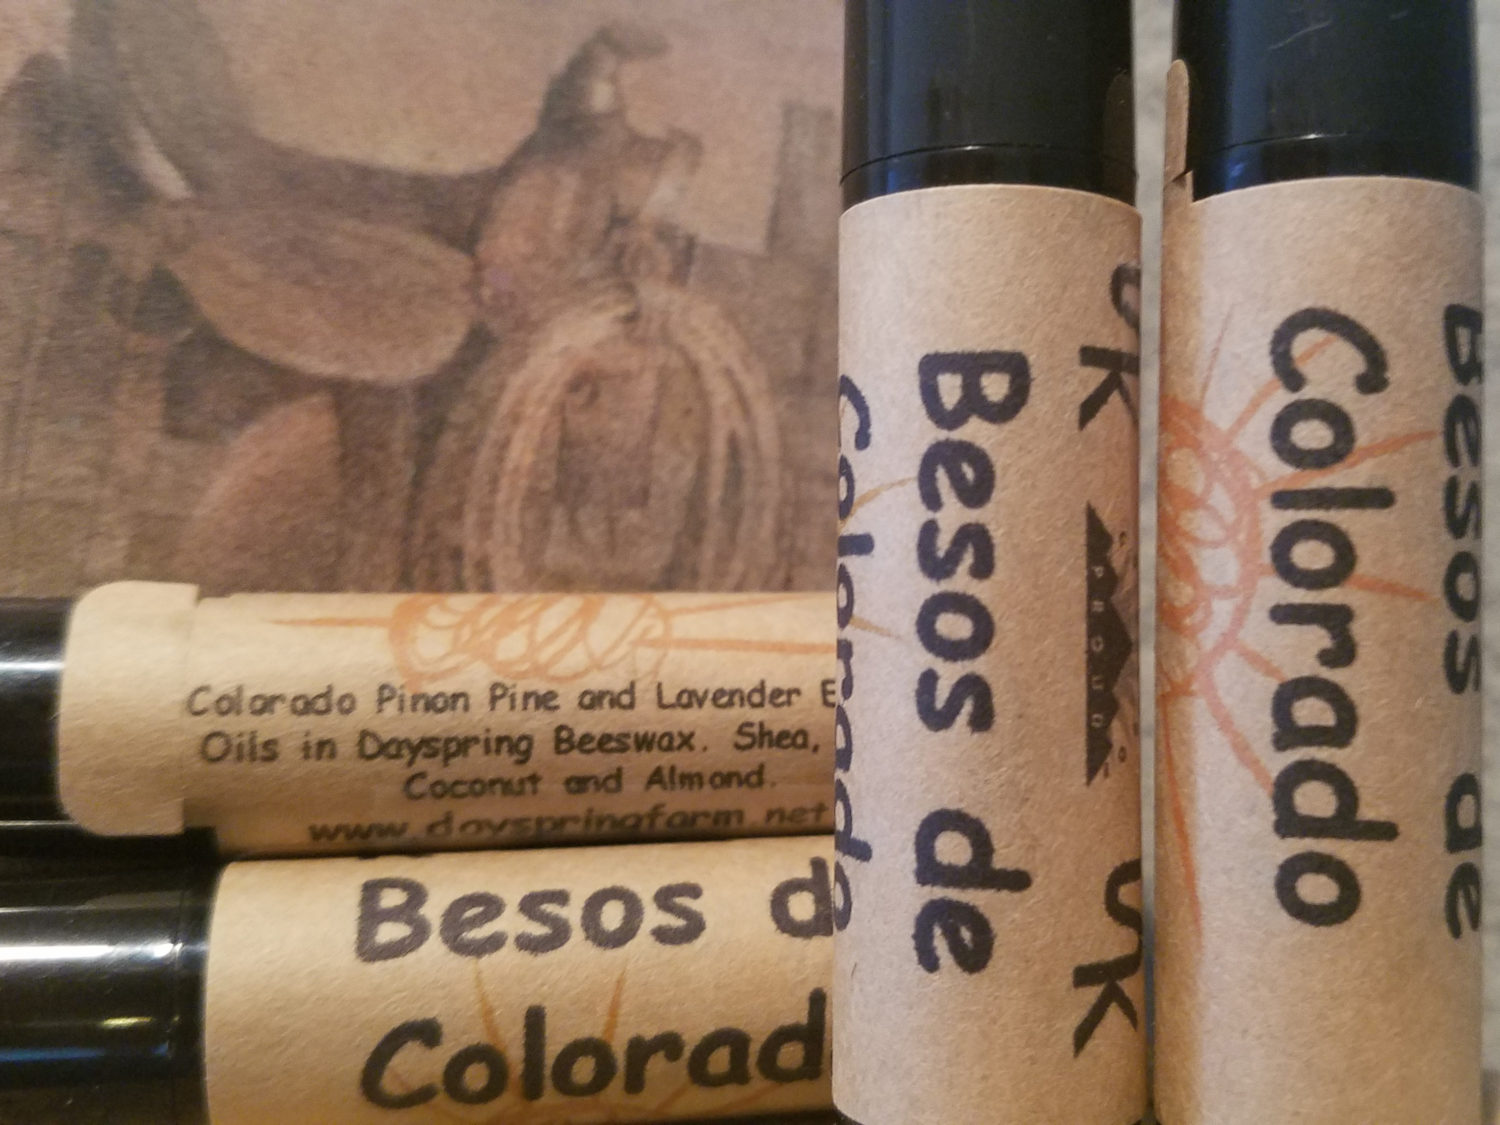 Organic Chapstick made with Pinon Pine and Lavender Essential Oils